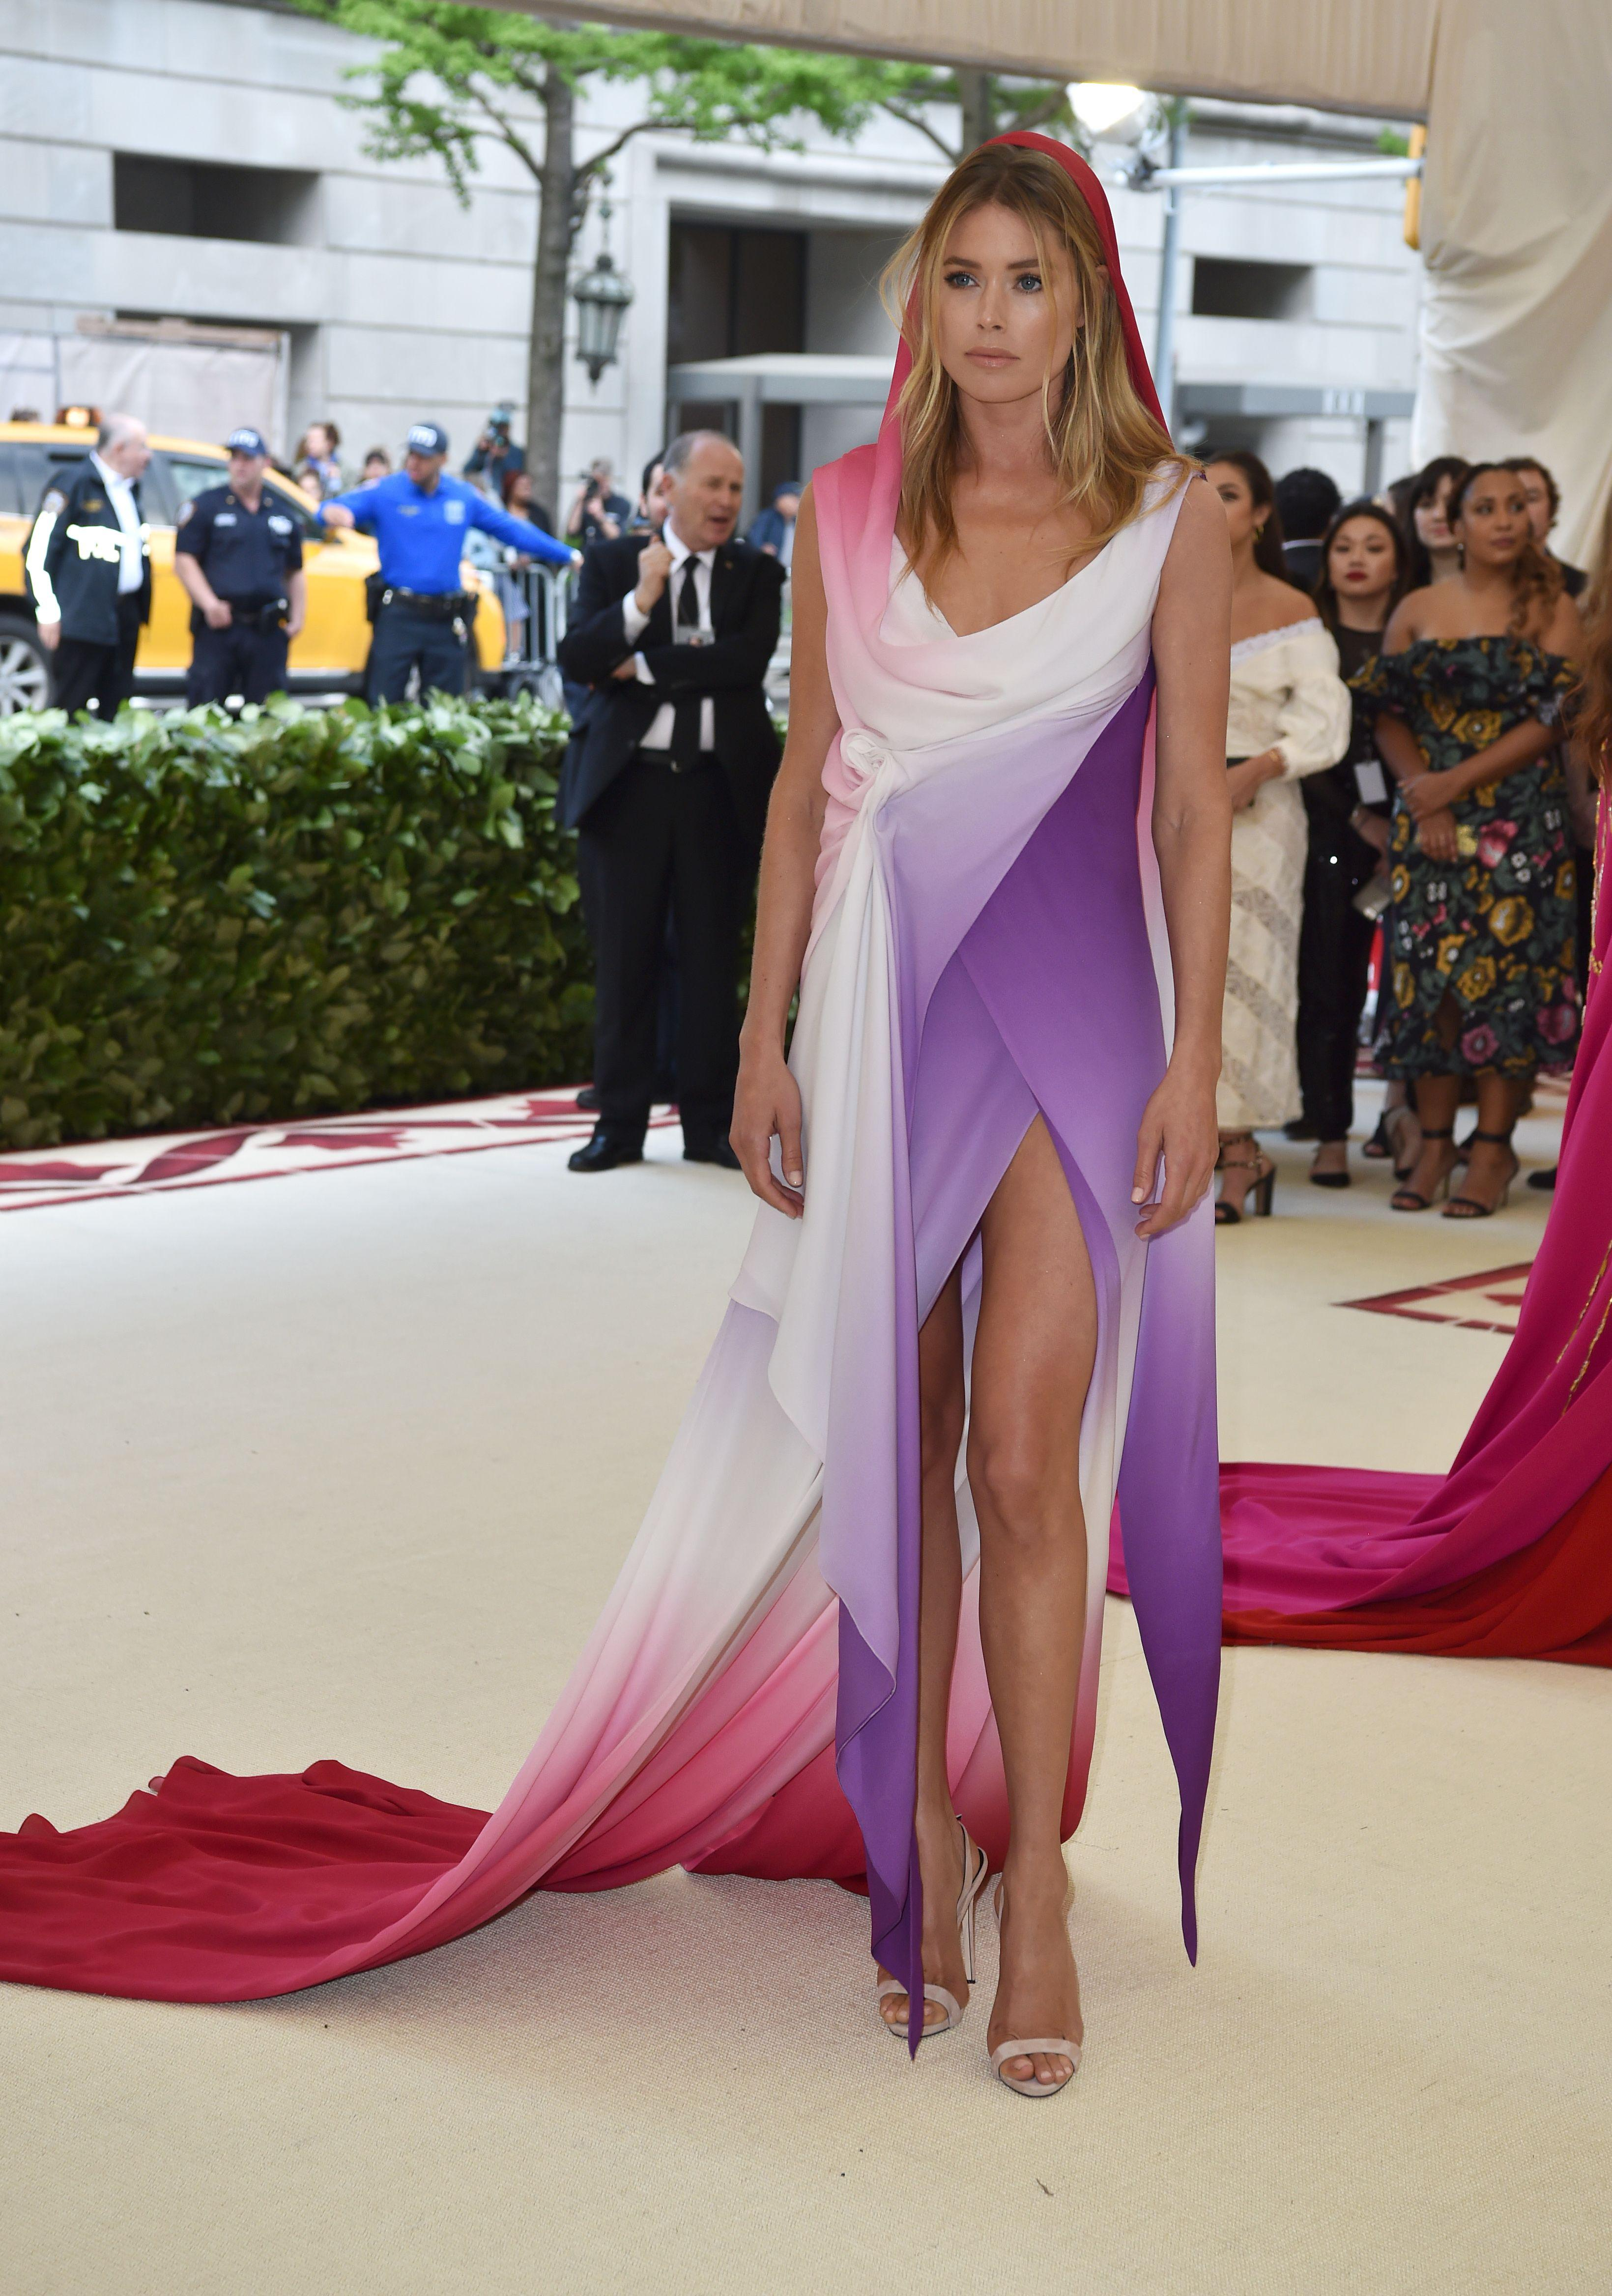 Doutzen Kroes arrives for the 2018 Met Gala on May 7, 2018, at the Metropolitan Museum of Art in New York. - The Gala raises money for the Metropolitan Museum of Arts Costume Institute. The Gala's 2018 theme is Heavenly Bodies: Fashion and the Catholic Imagination. (Photo by Hector RETAMAL / AFP)        (Photo credit should read HECTOR RETAMAL/AFP/Getty Images)